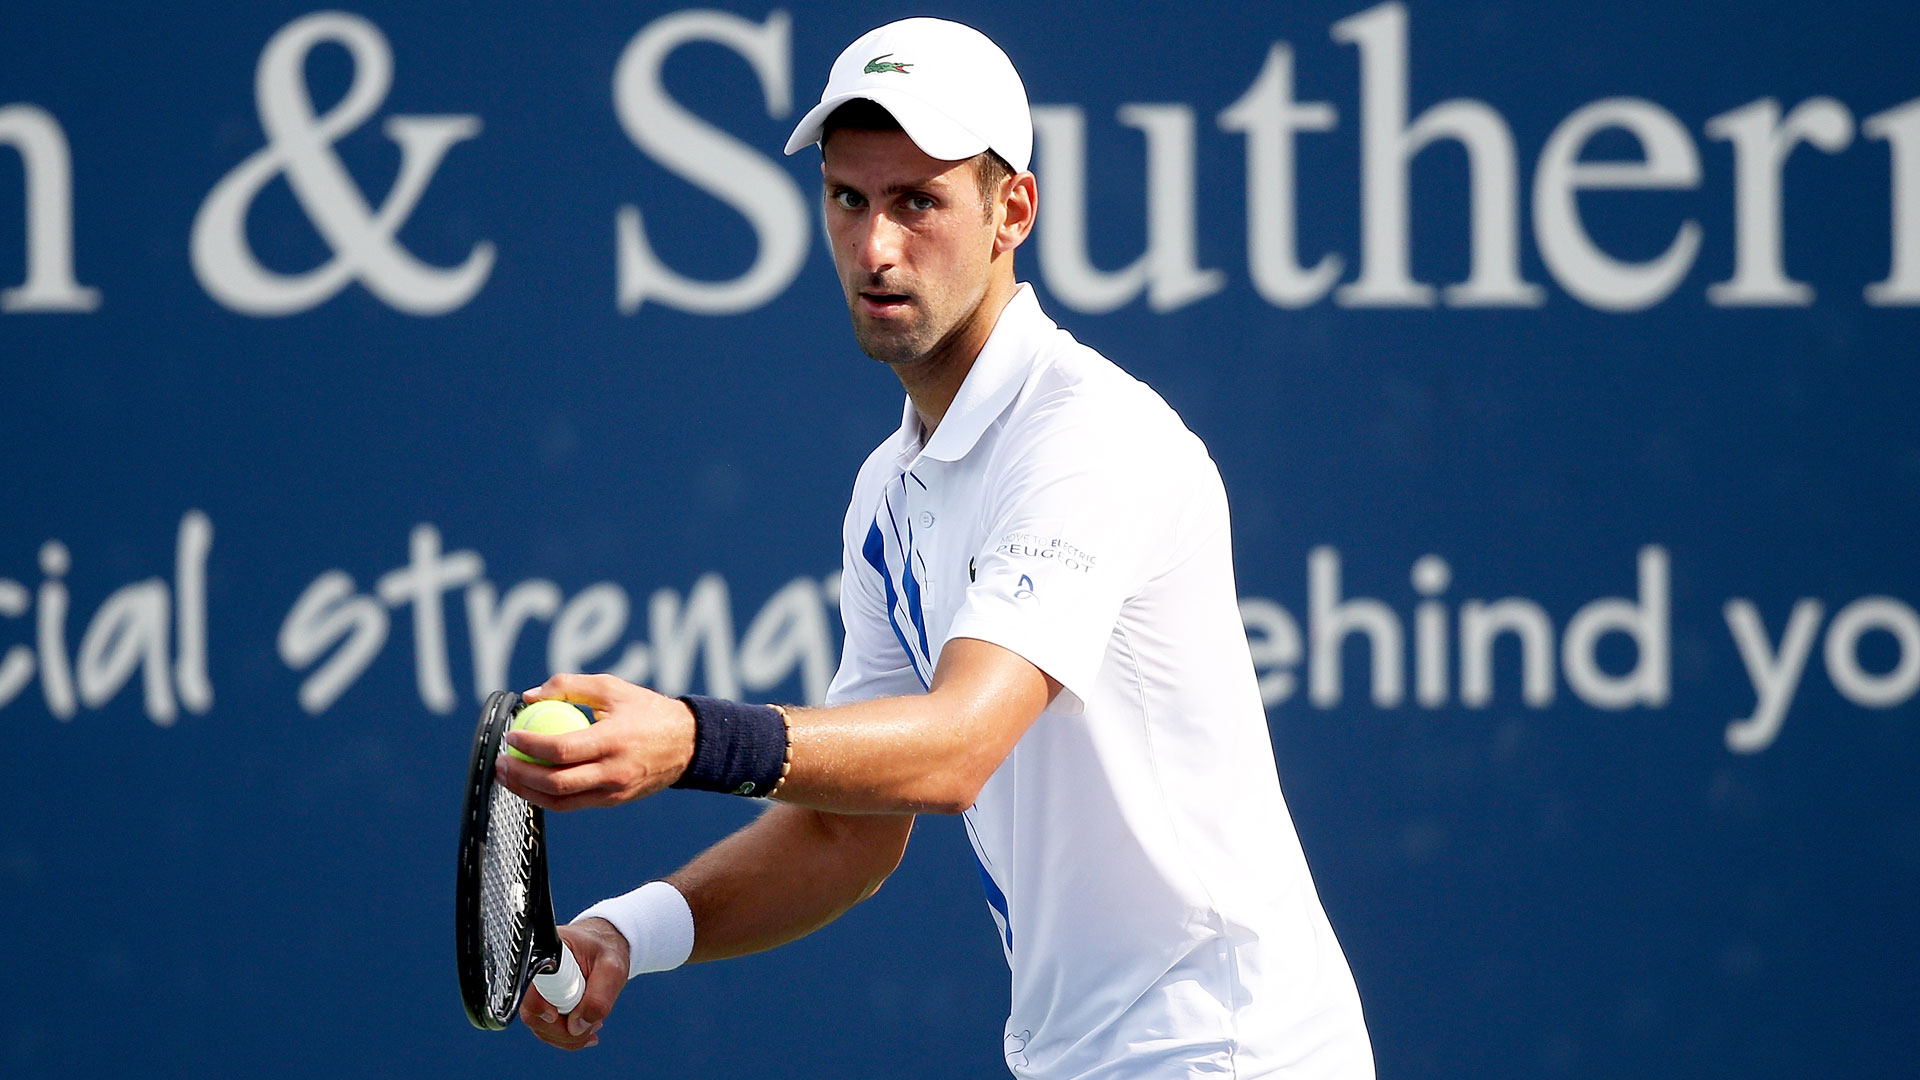 Djokovic Vs Bautista Agut Atp Cincinnati New York Masters Tennis Live Streaming Preview And Predictions Livetennis Com